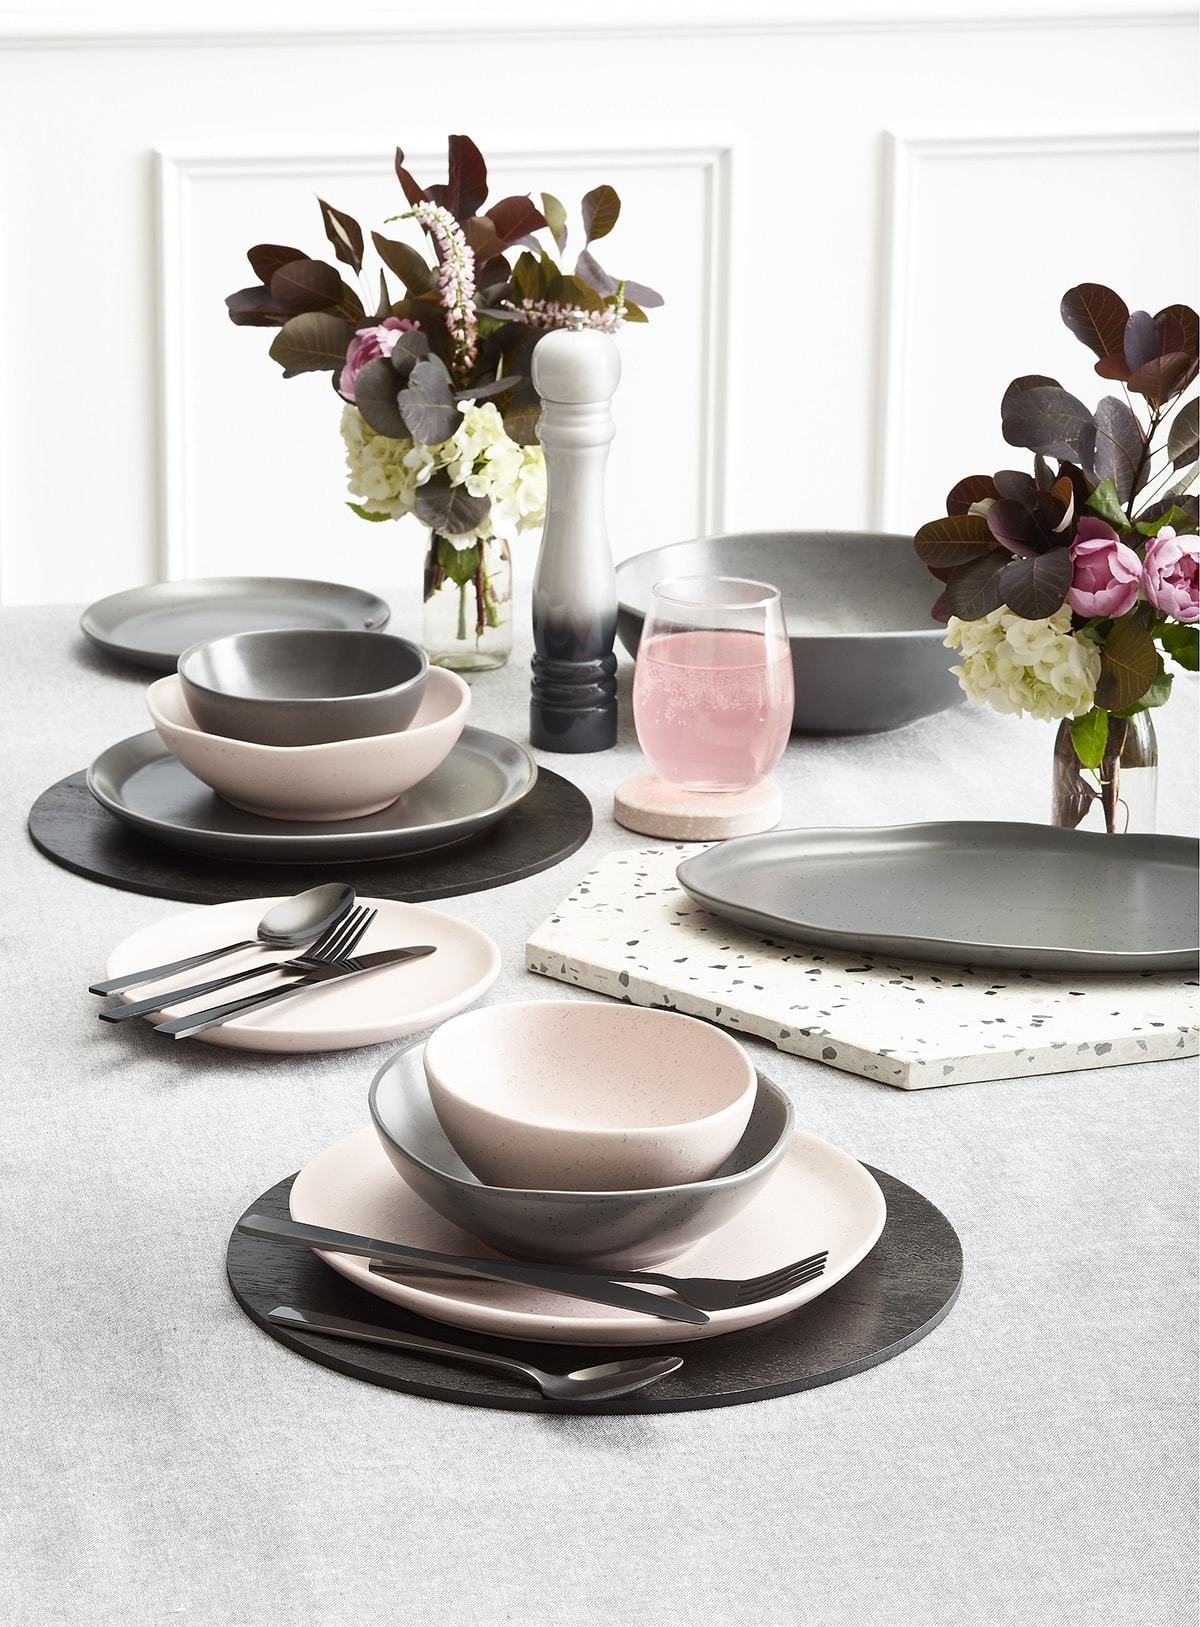 kmart pink dinnerware with black placemats and marble trivet